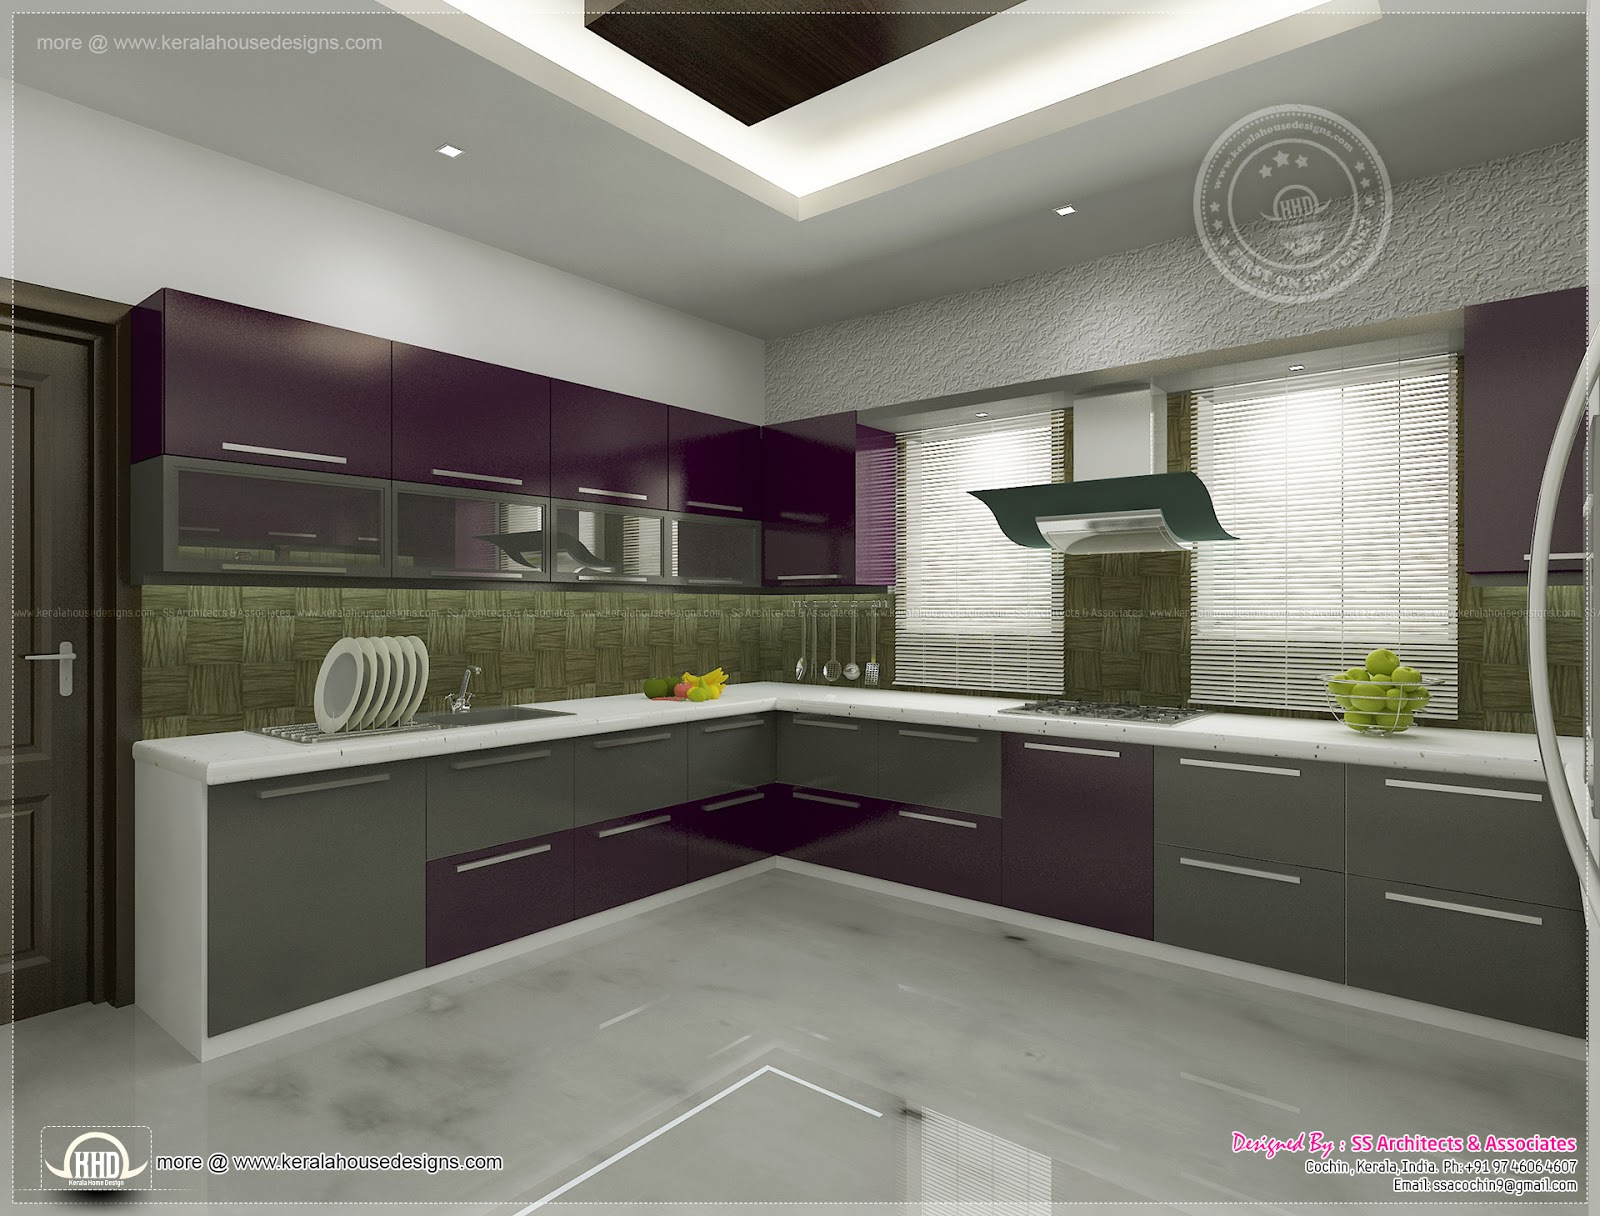 Kitchen interior views by ss architects cochin kerala for Indoor design home